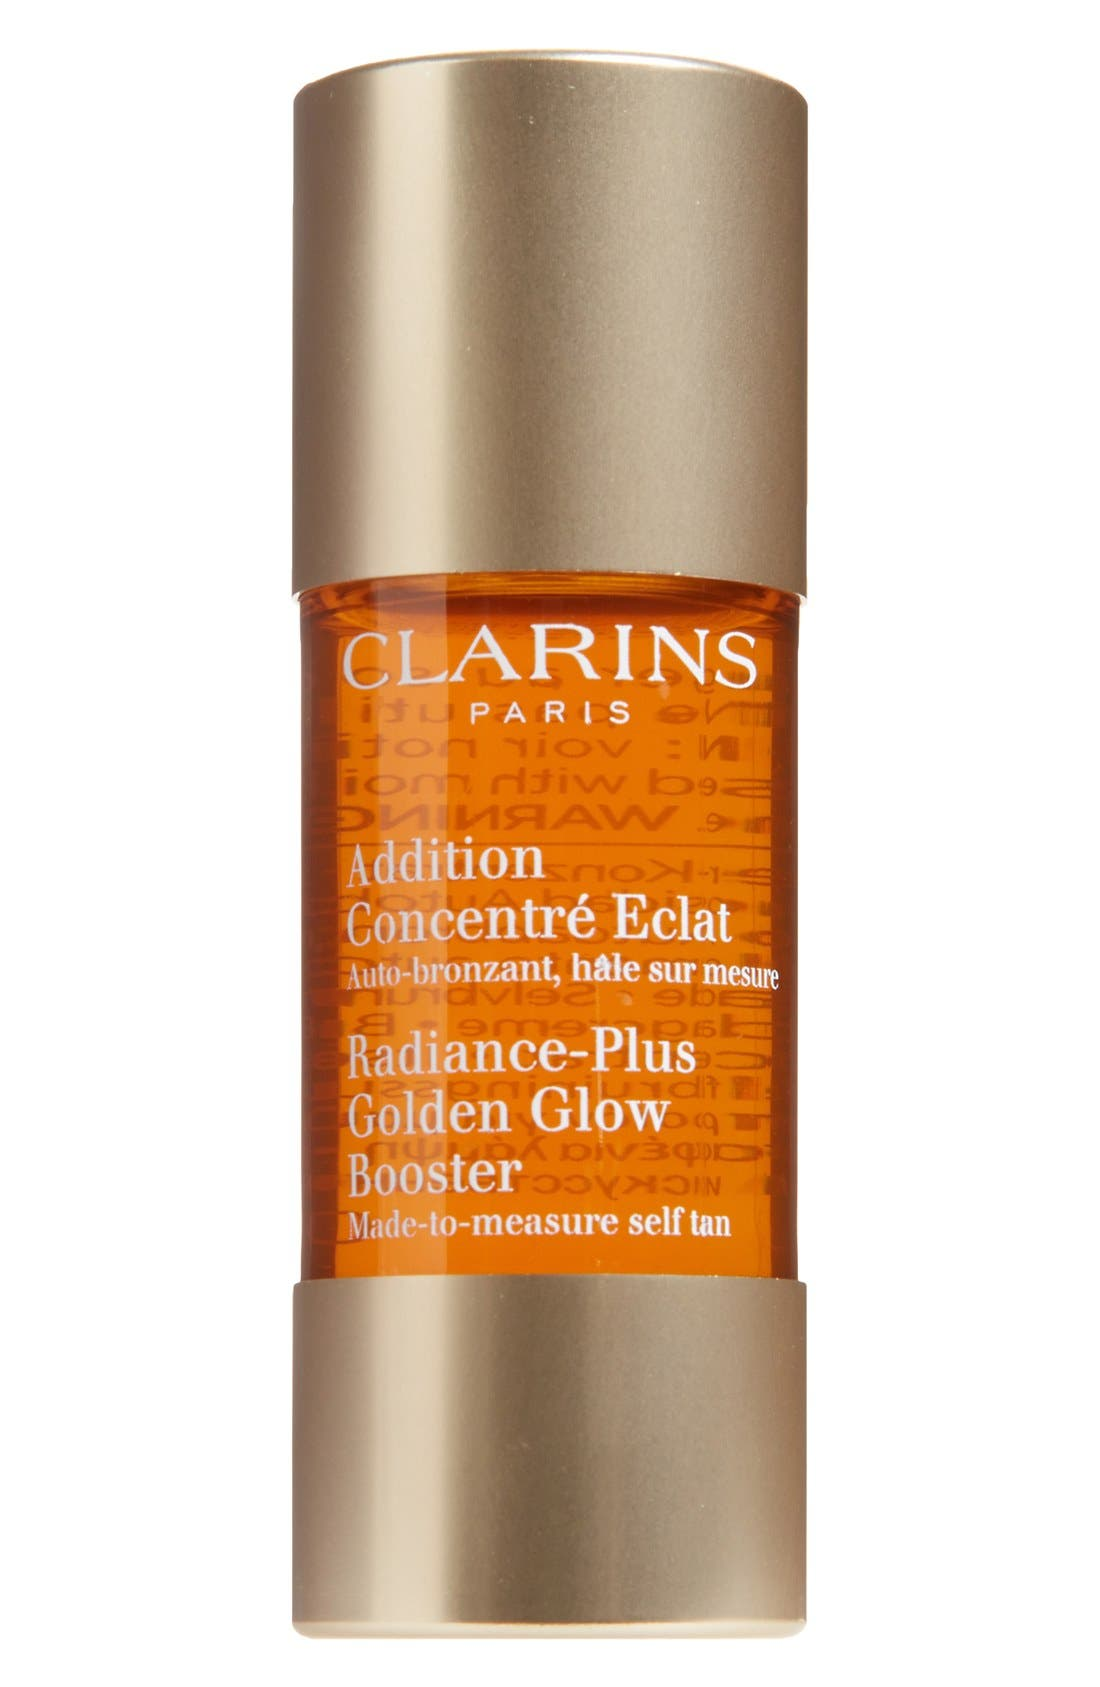 Radiance-Plus Golden Glow Booster for Face | Nordstrom